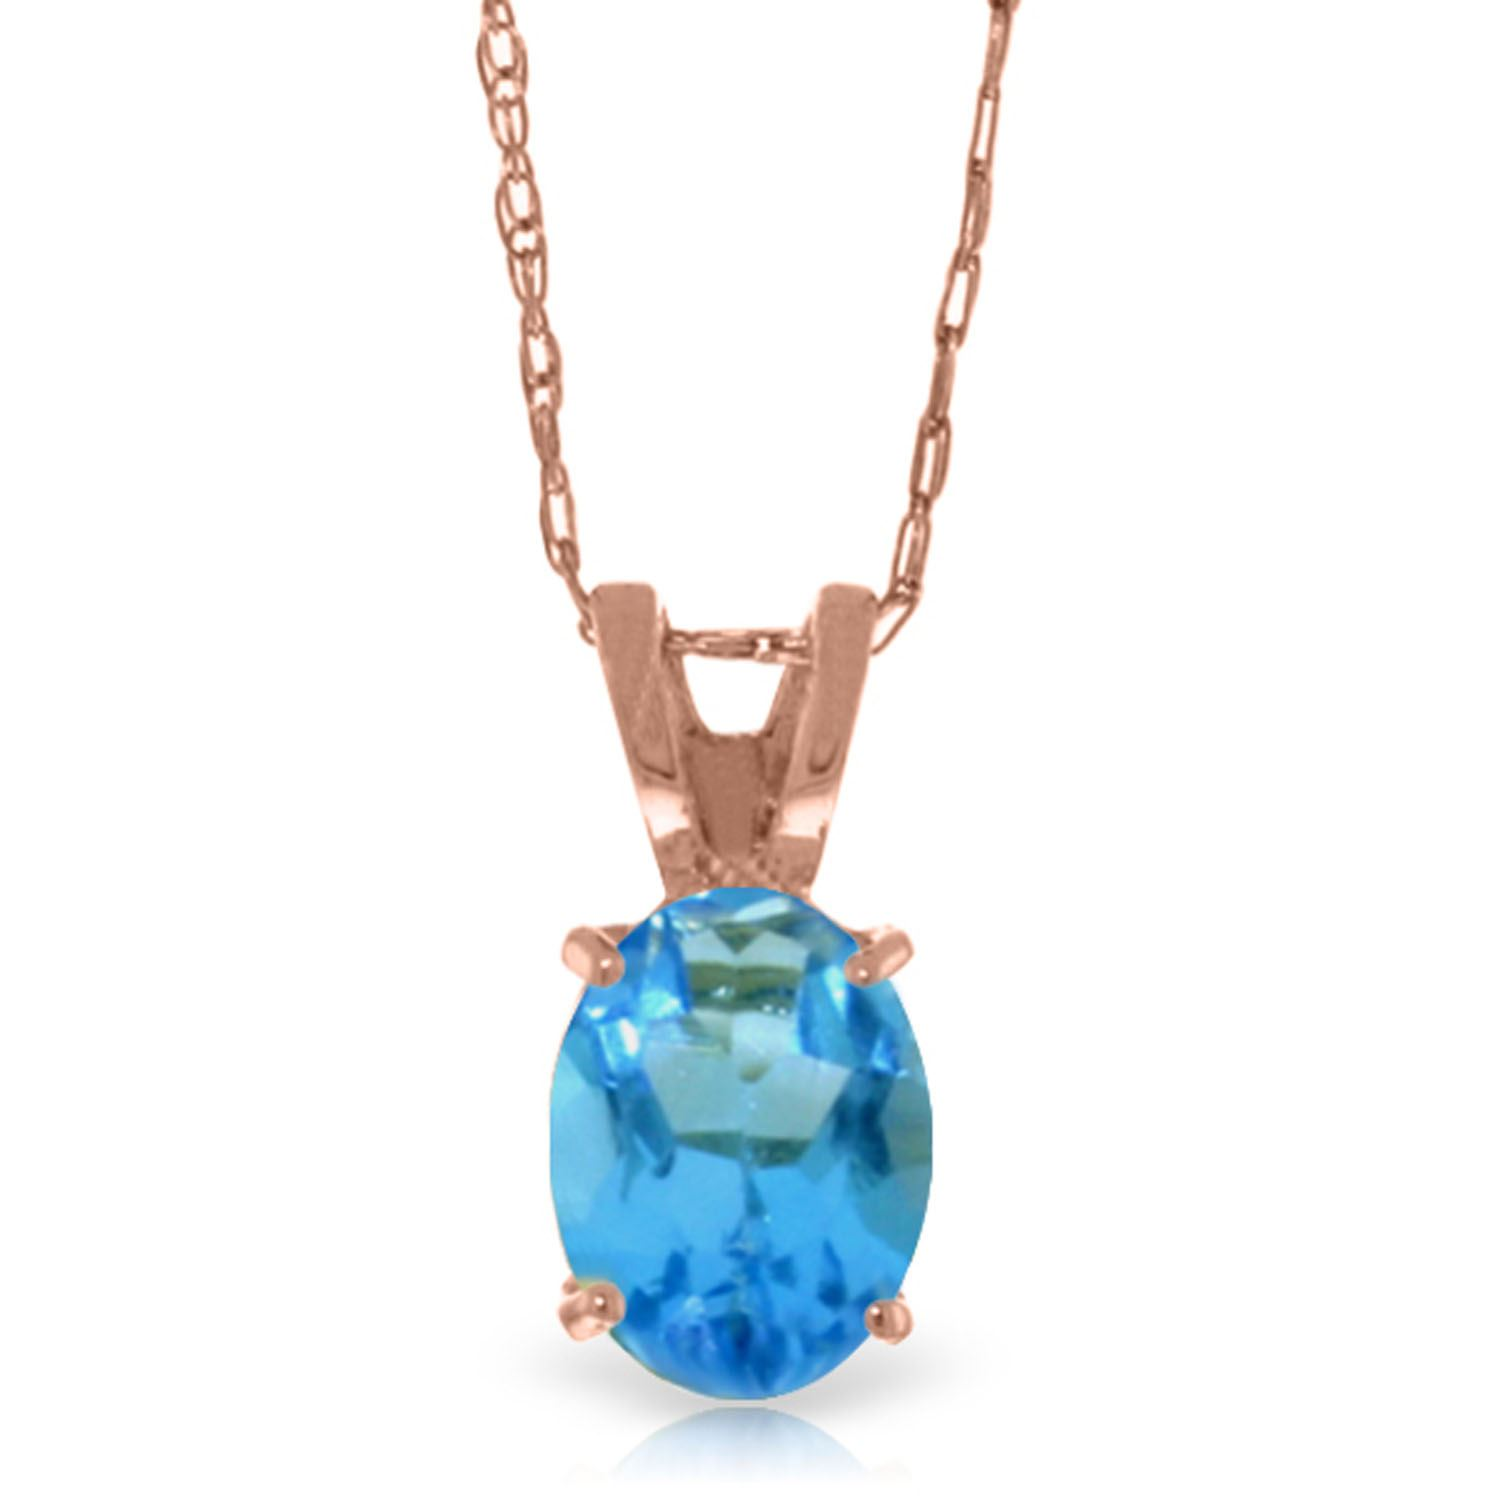 ALARRI 0.85 Carat 14K Solid Rose Gold Solitaire Citrine Necklace with 22 Inch Chain Length